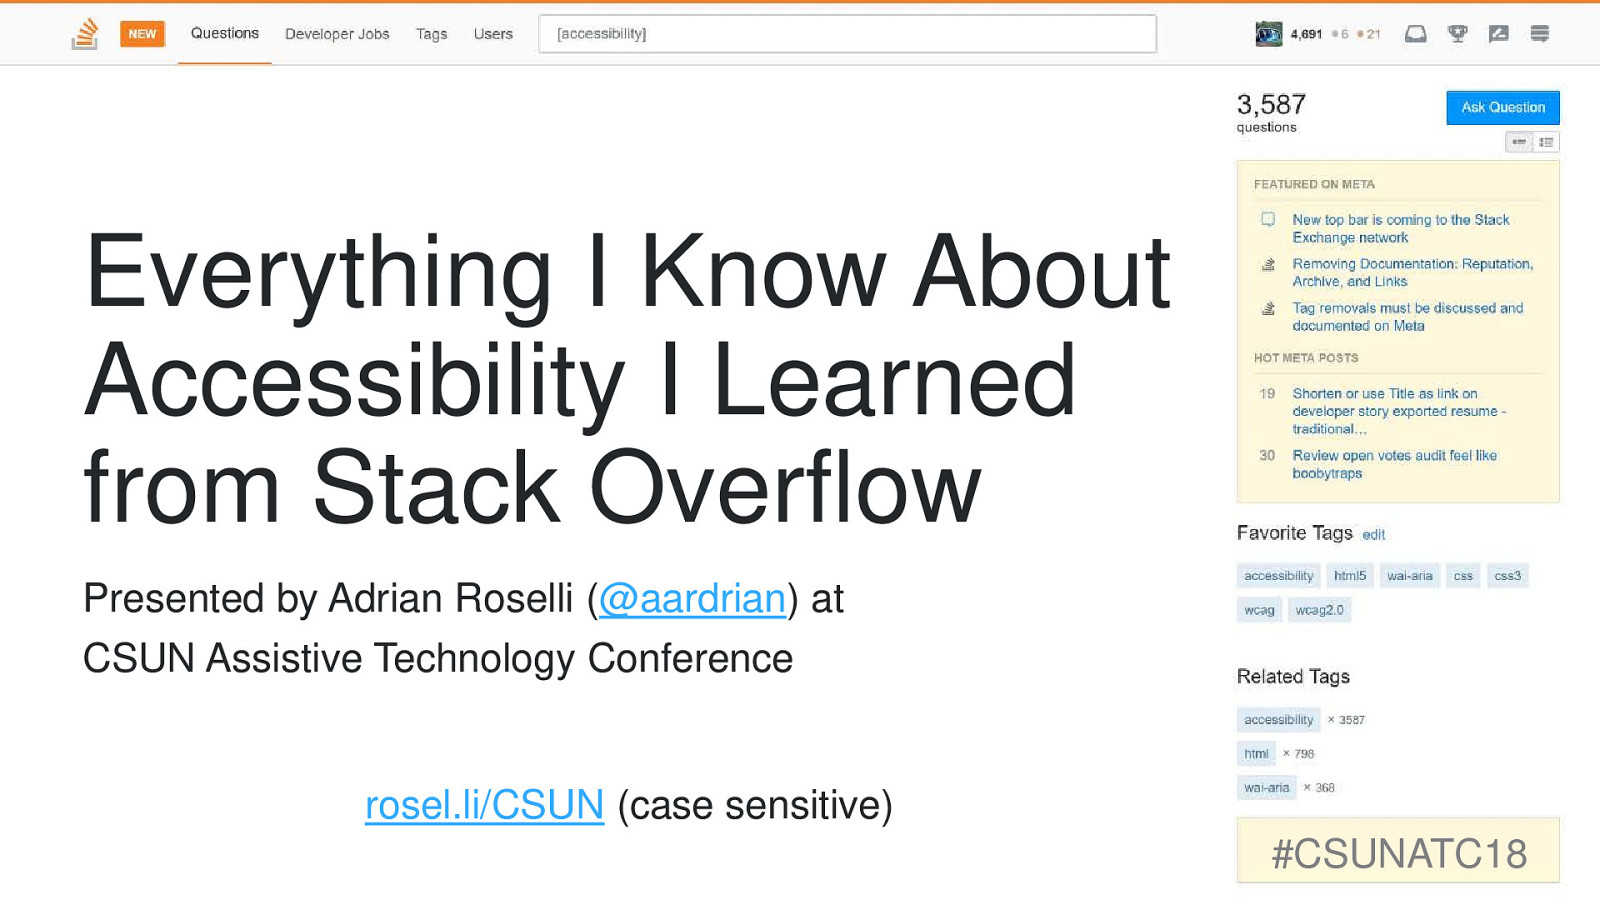 Everything I Know About Accessibility I Learned from Stack Overflow